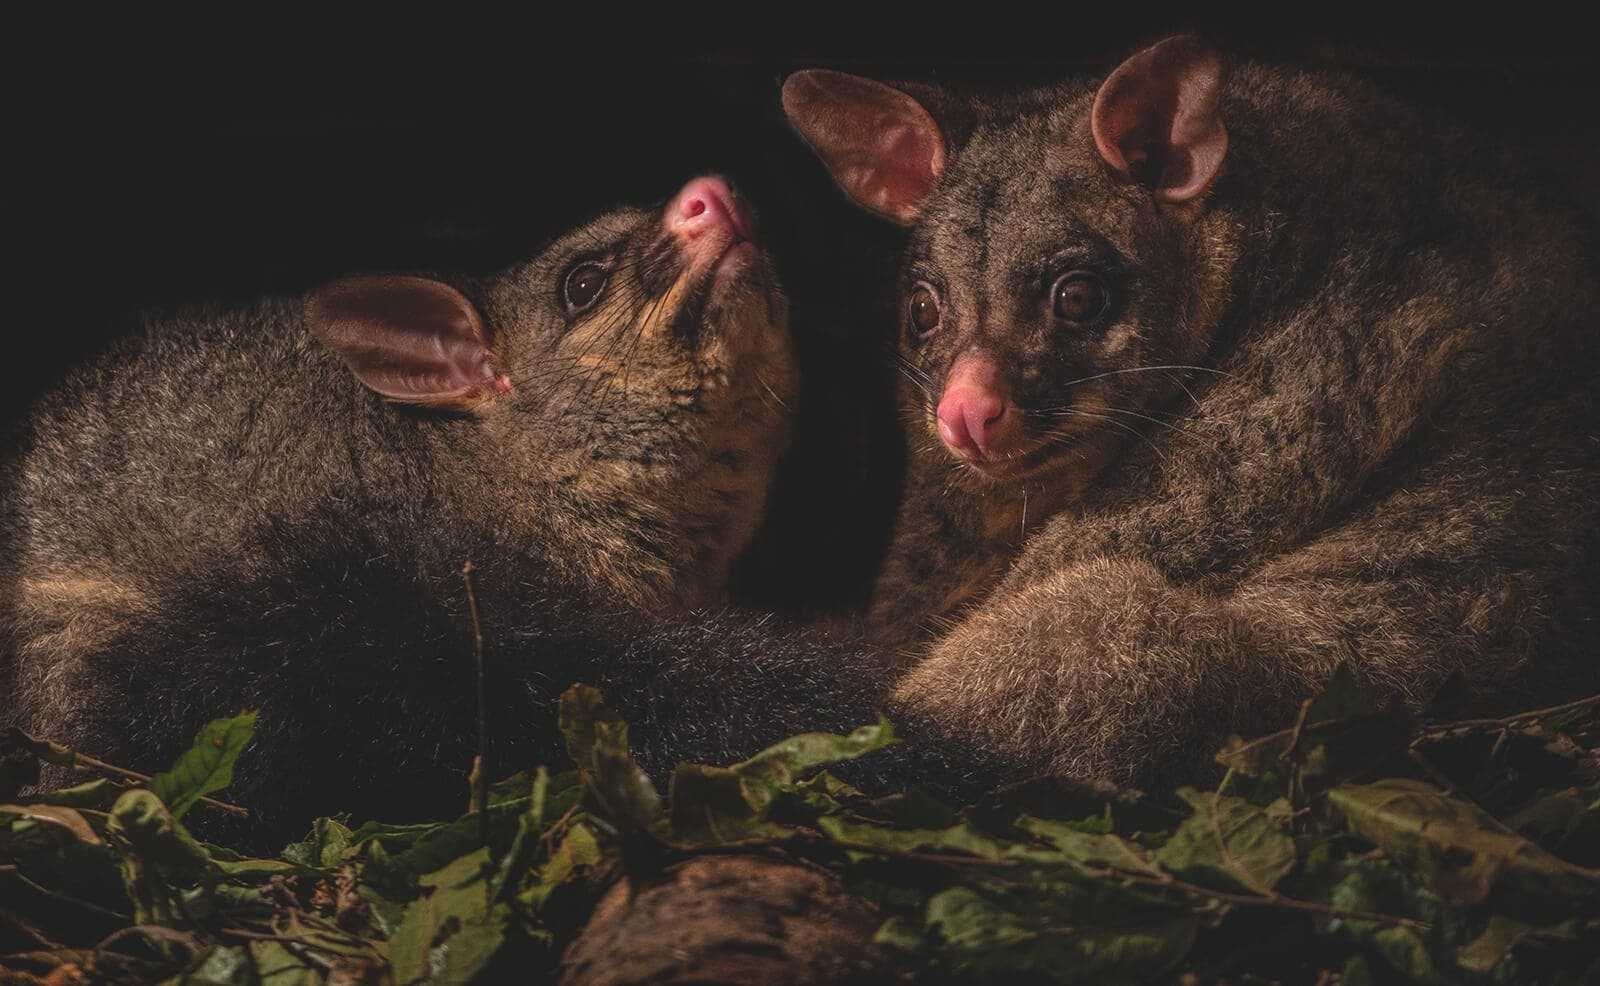 How To Get Rid Of Possums? Here Are 7 Proven Ways Right Now